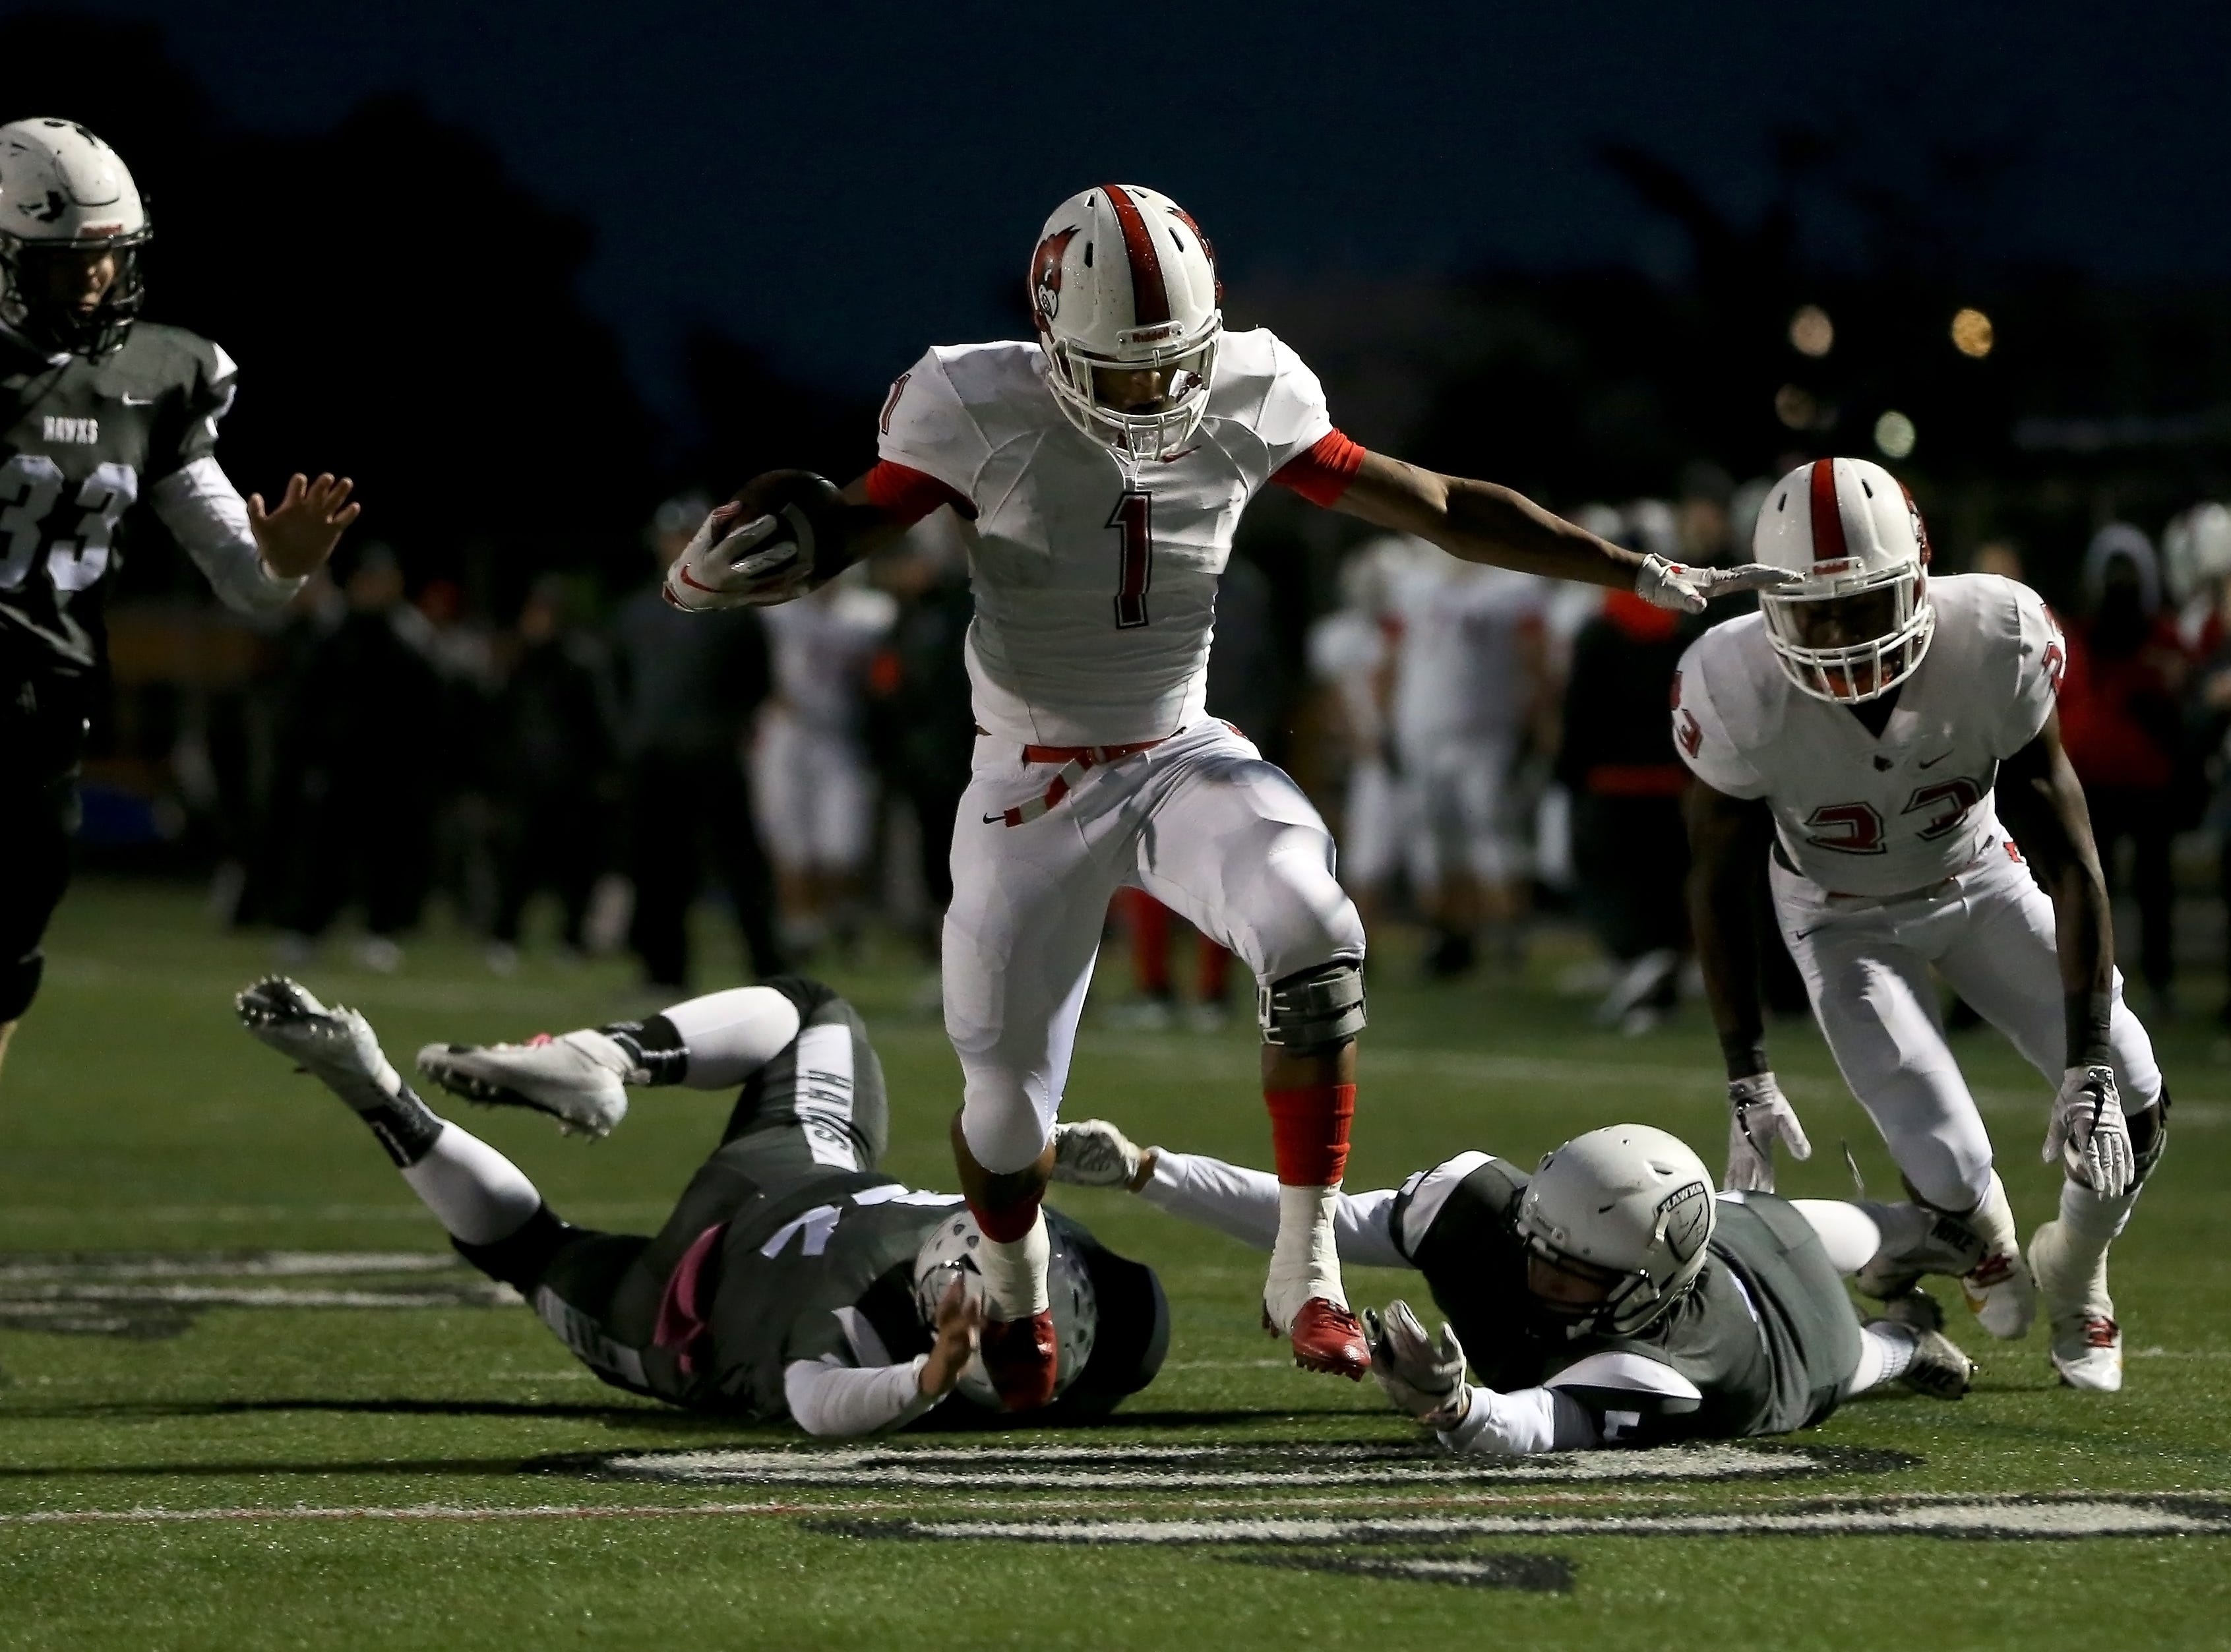 Colerain Cardinals running back Syncere Jones (1) leaps and avoids two defenders on a touchdown run in the first quarter during a high school football game between the Colerain Cardinals and the Lakota East Thunderhawks, Friday, Oct. 12, 2018, at Lakota East High School in Liberty Township, Ohio.